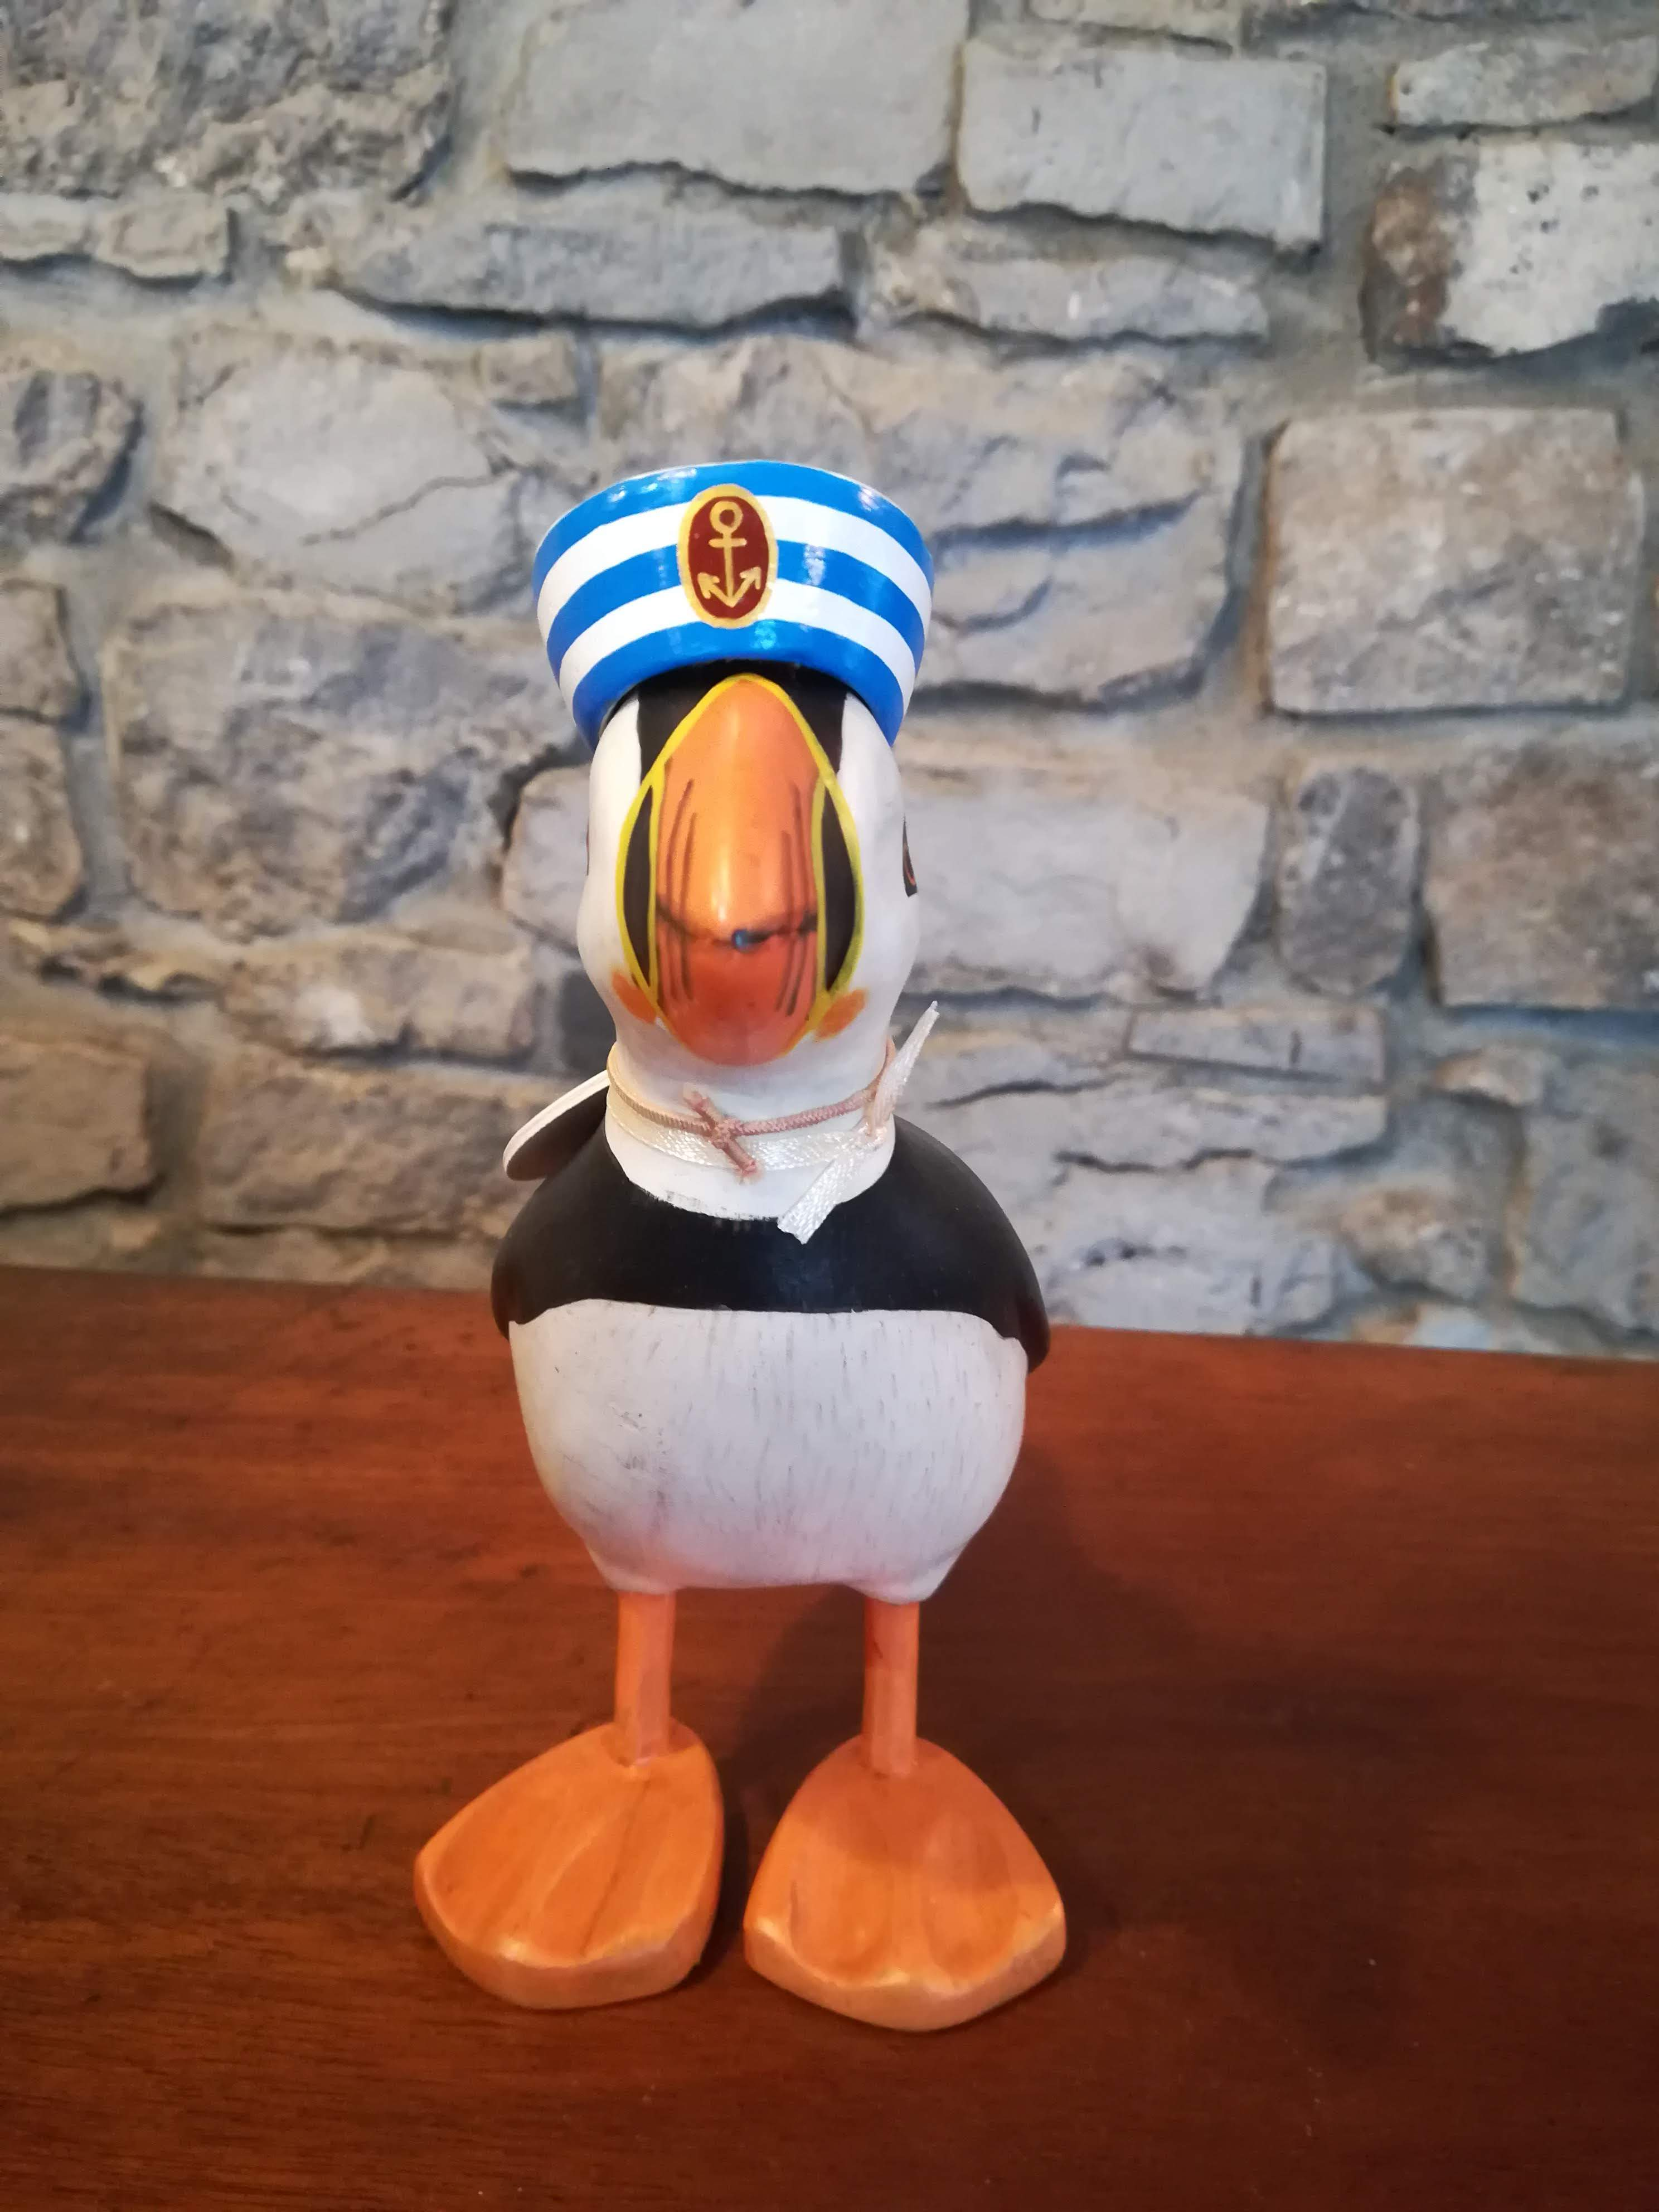 Puffin (white and blue hat) Sailor